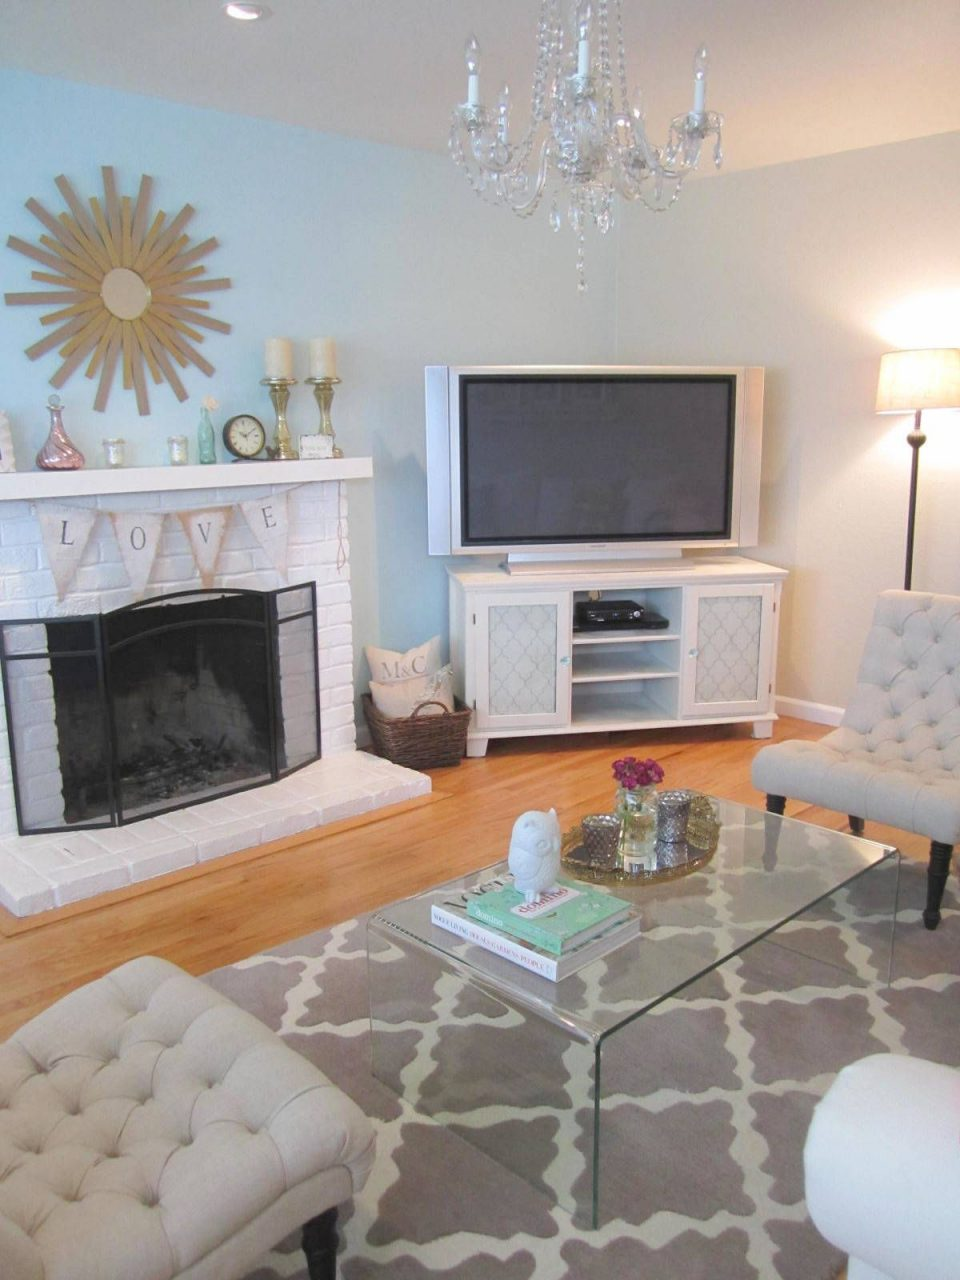 Cute Living Room I Love The Love Sign On The Fire Place Living